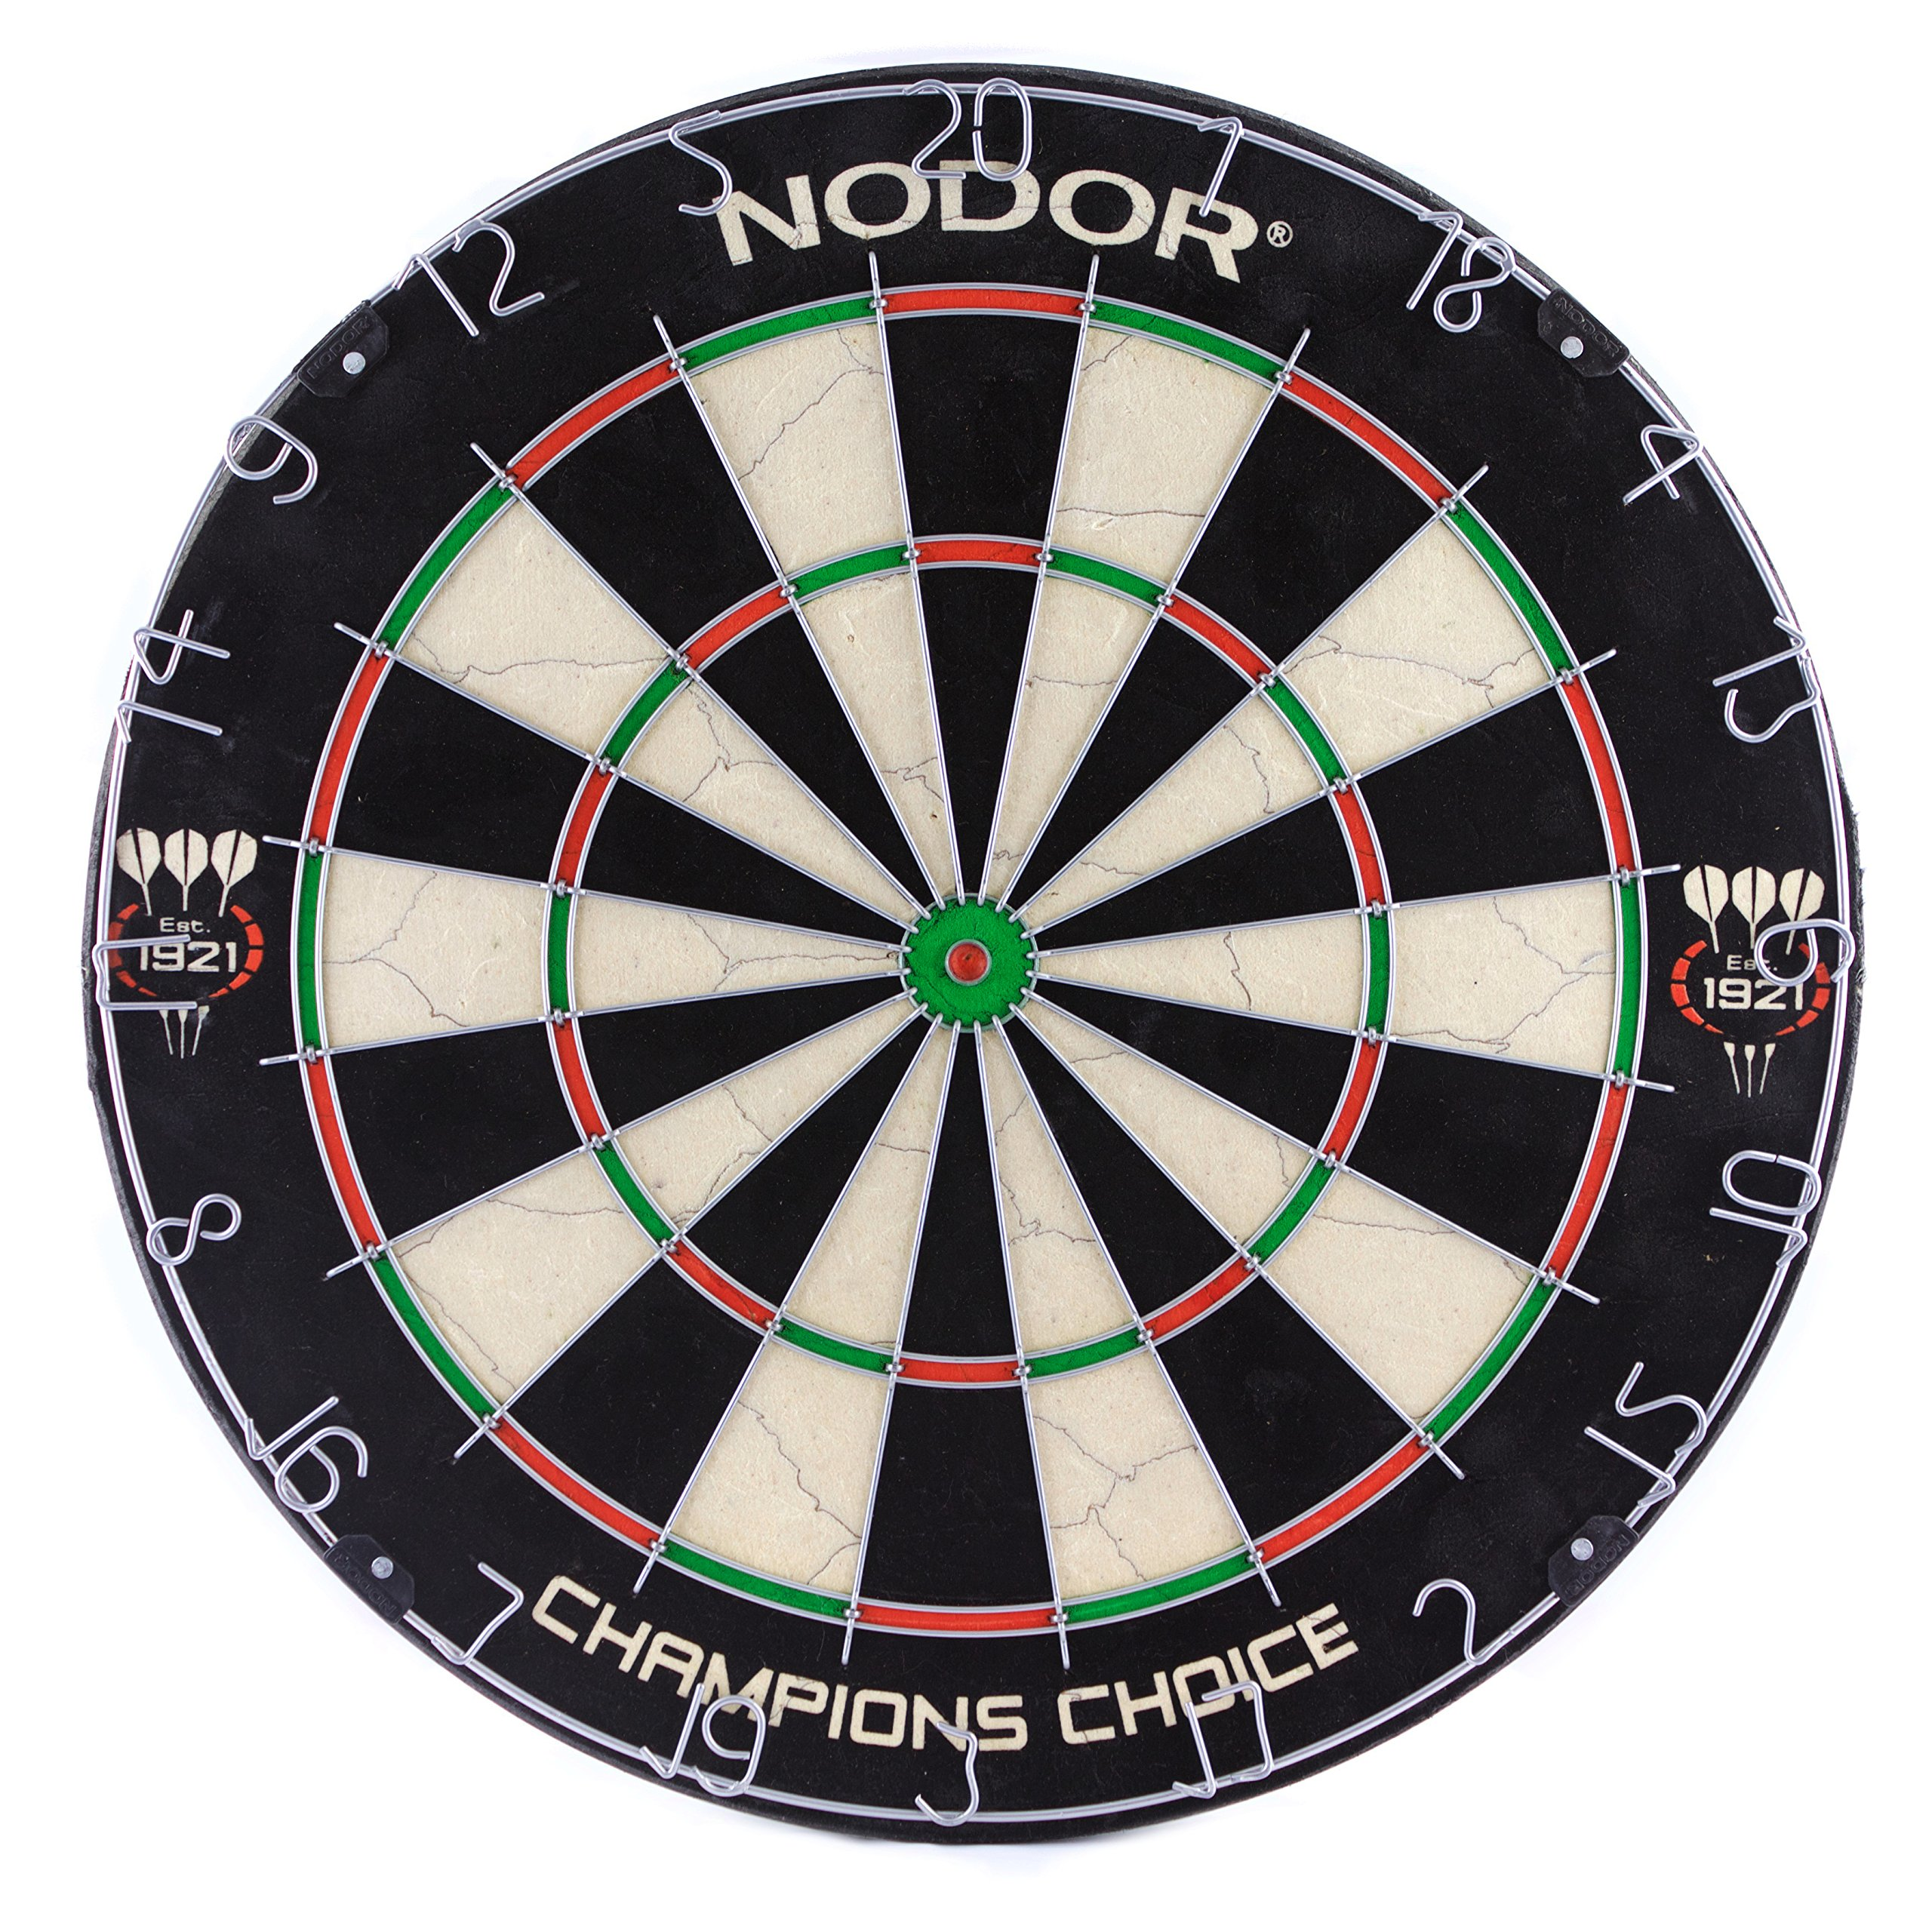 Nodor Champion's Choice Practice Sef-Adhesive Bristle Dartboard - Used by Pro Dart Throwers to Enhance Their Skills